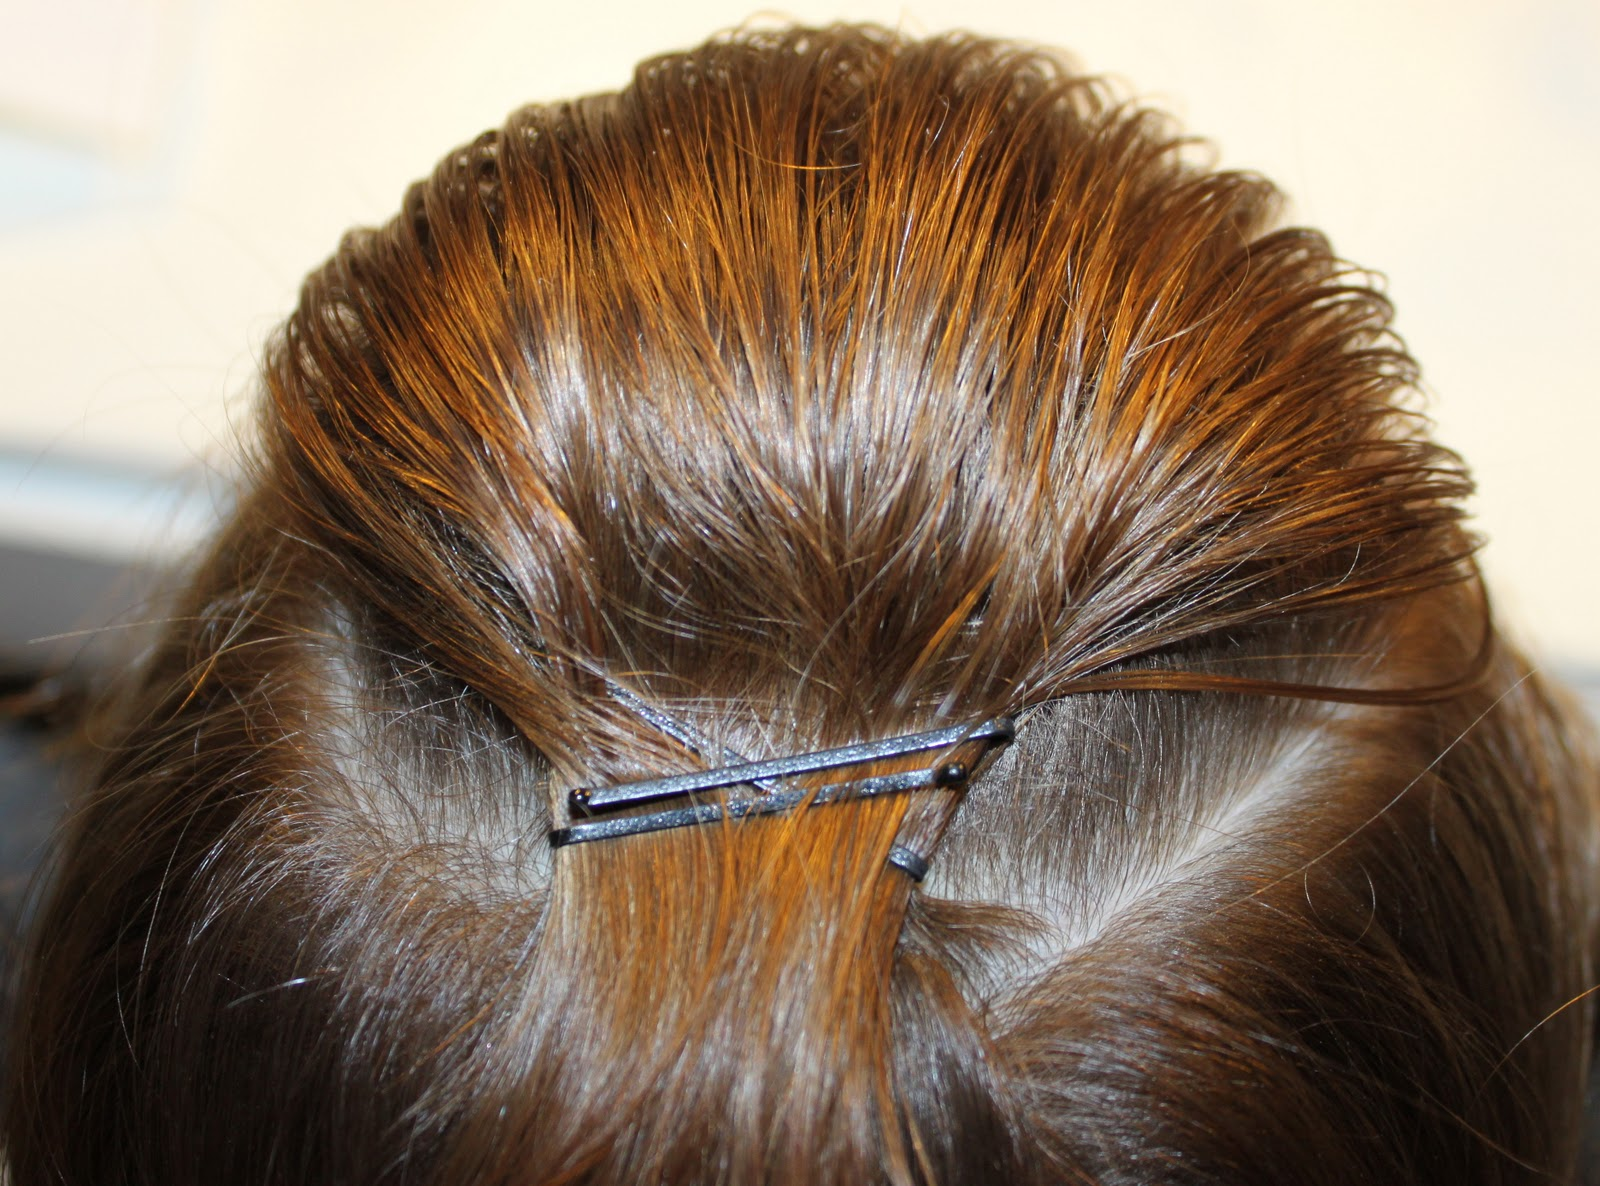 Hairstyles For Short Hair Using Bobby Pins: How To Do A Hair Pouf? 5 Foolproof Ways